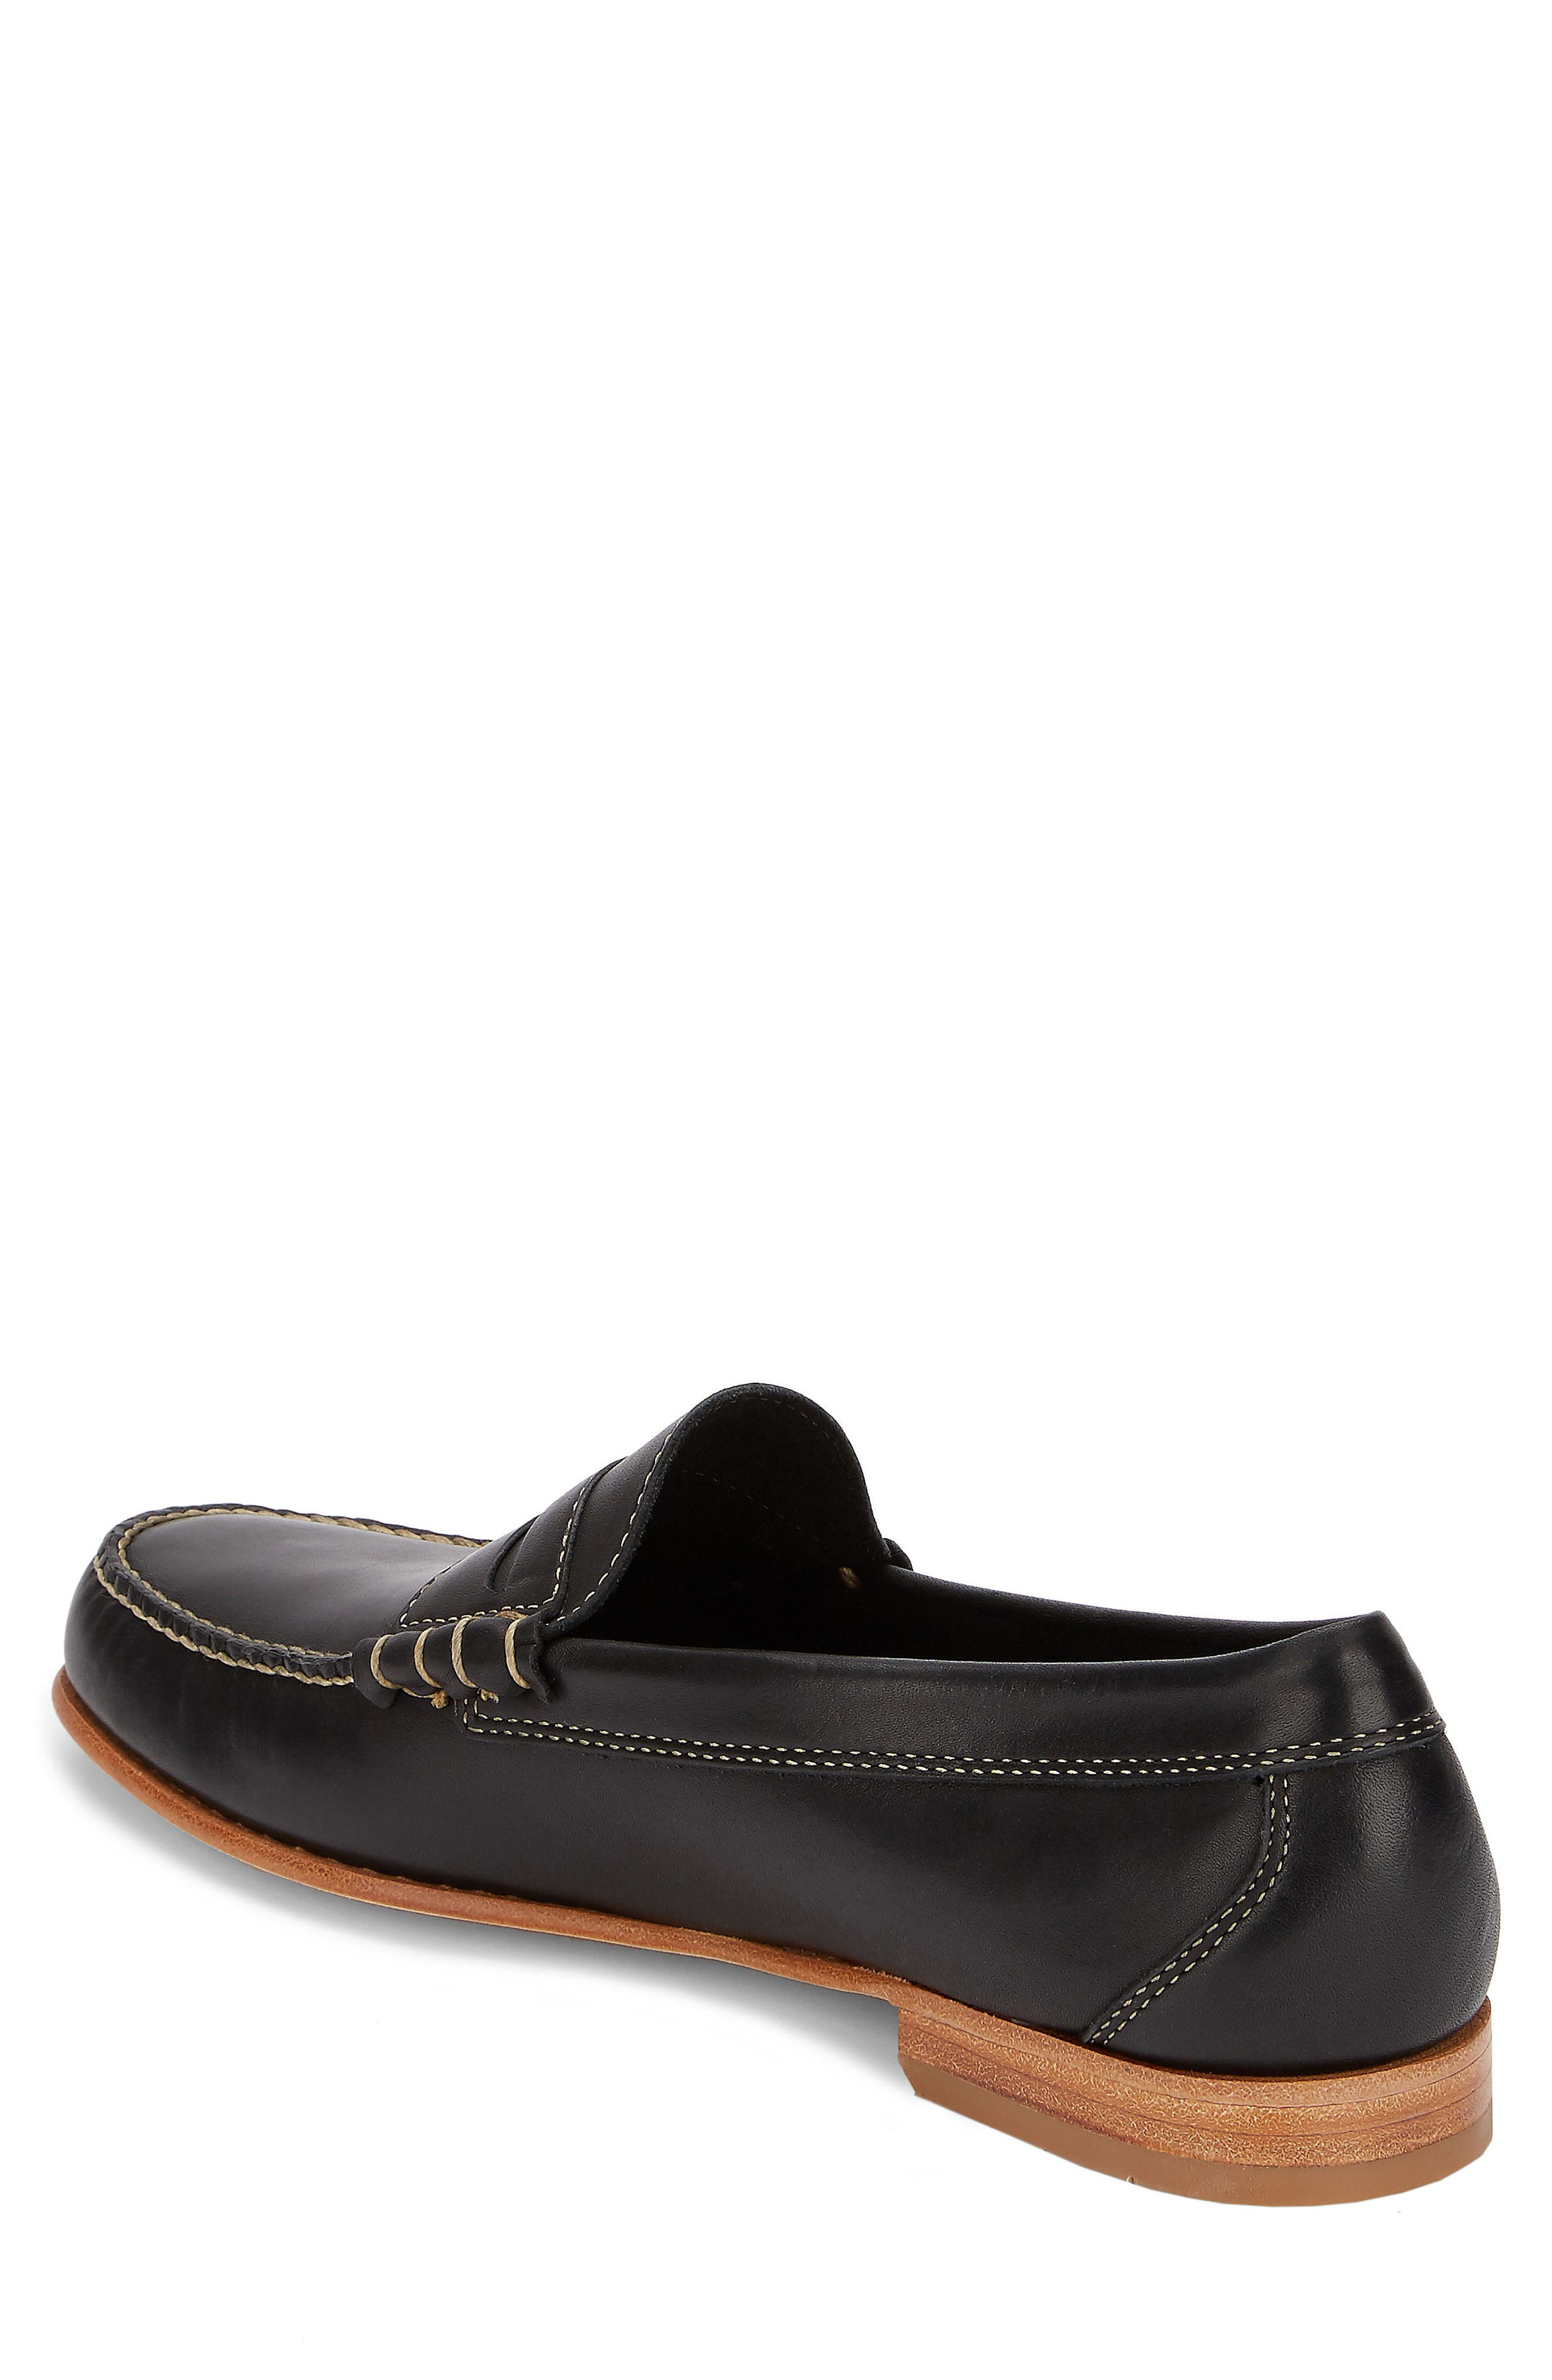 Weejuns Lambert Penny Loafer,                             Alternate thumbnail 2, color,                             001